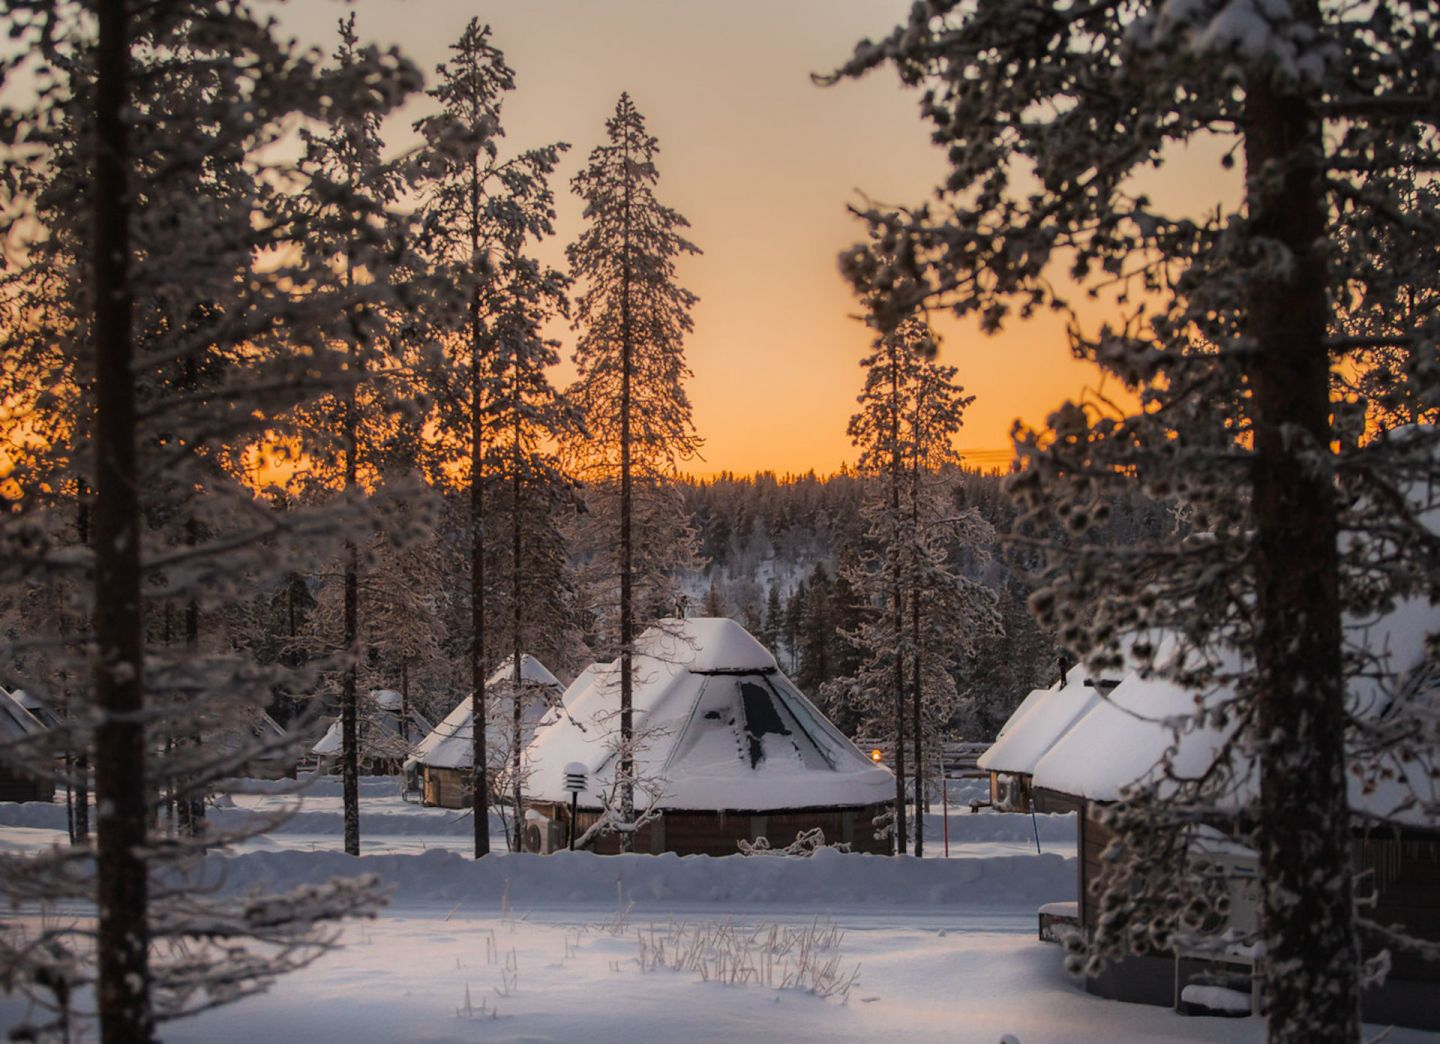 Sunset at Northern Lights Village, a special winter accommodation in Saariselkä, Finland